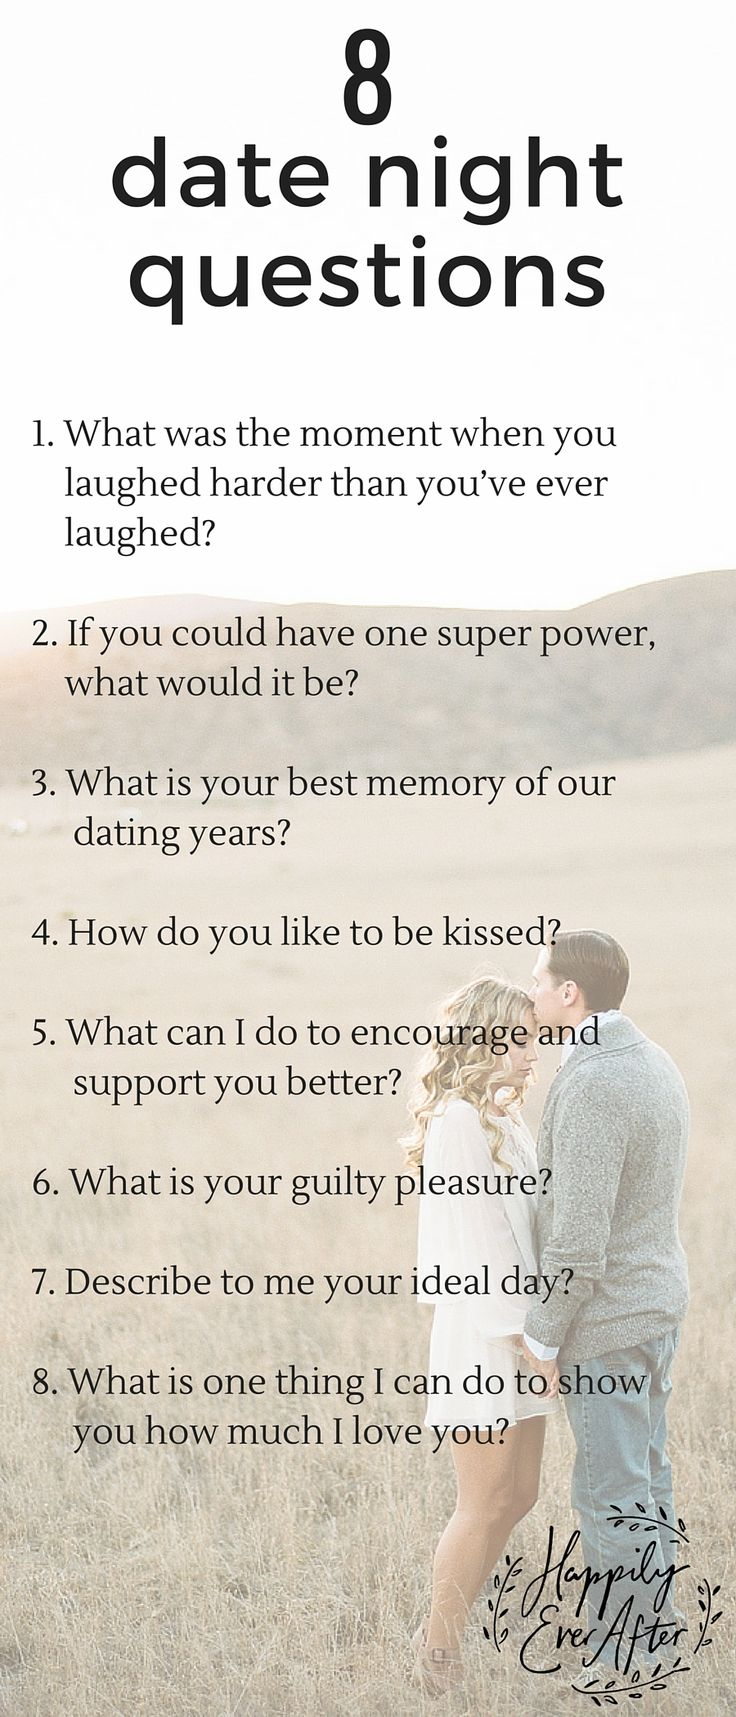 What questions do dating sites ask